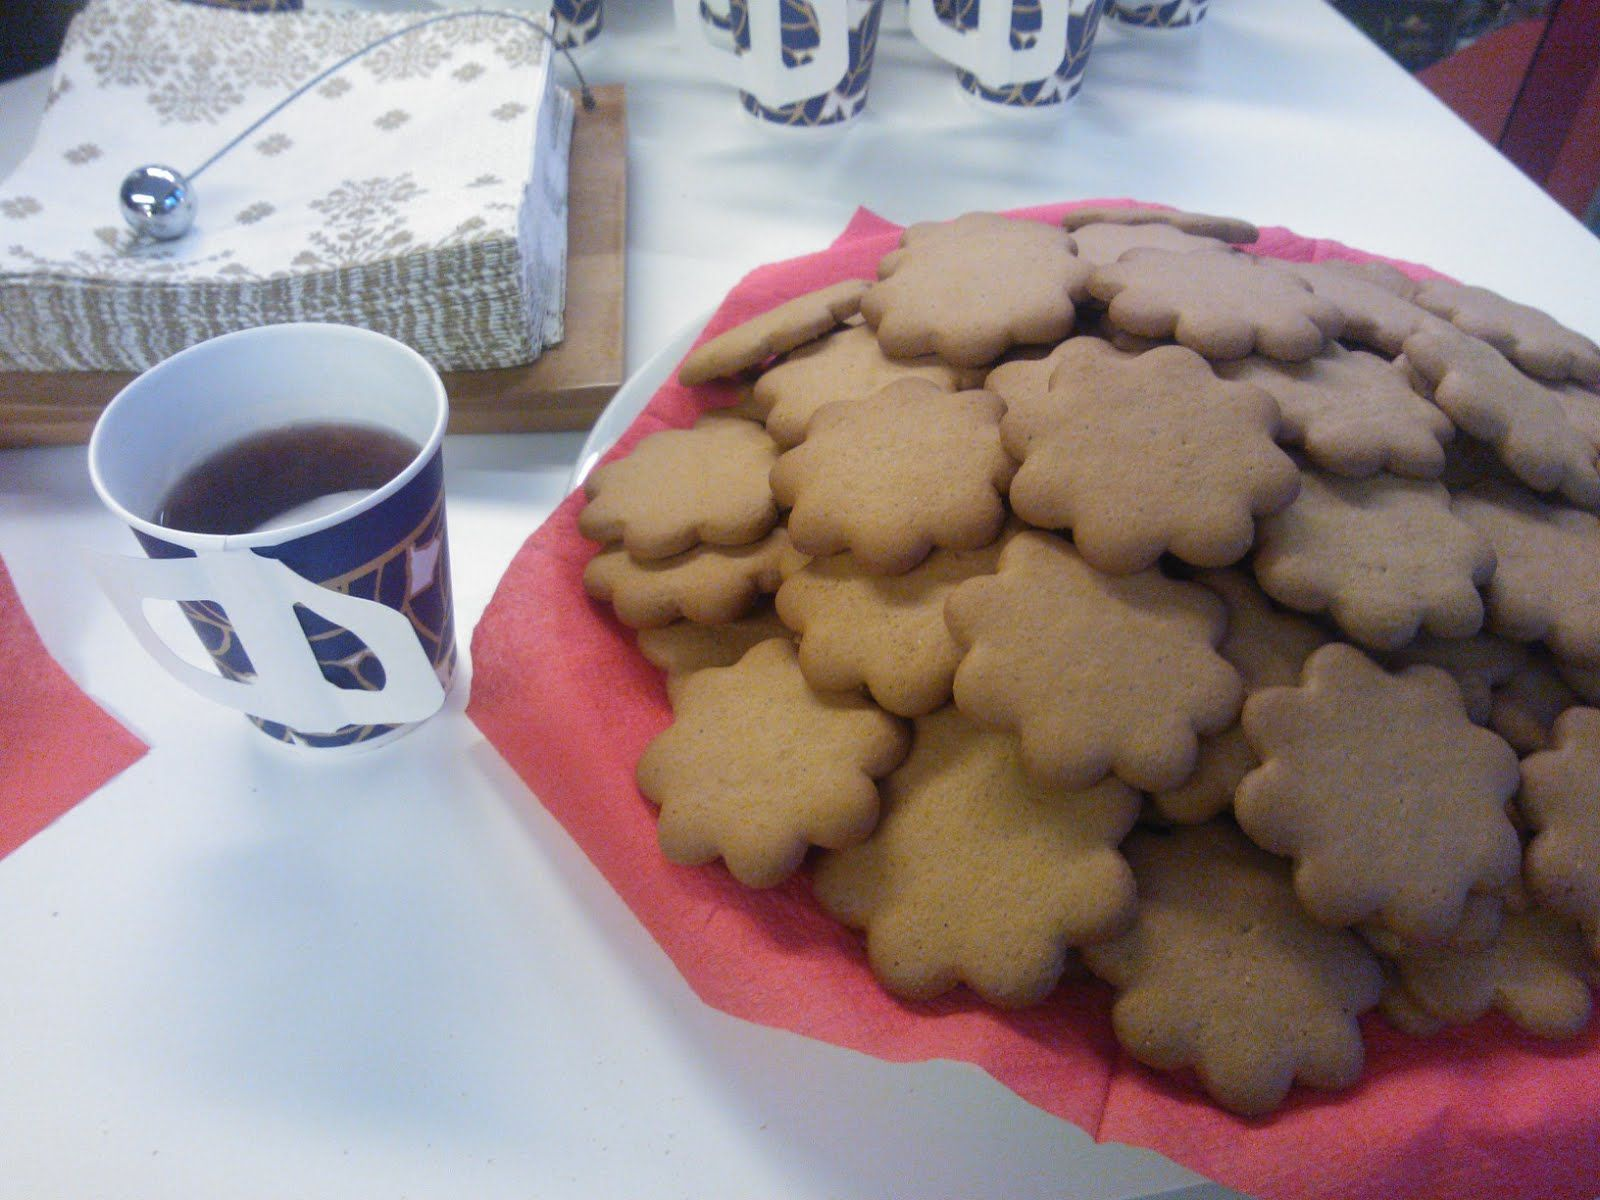 Mulled wine and ginger bread belong to the Finnish Christmas